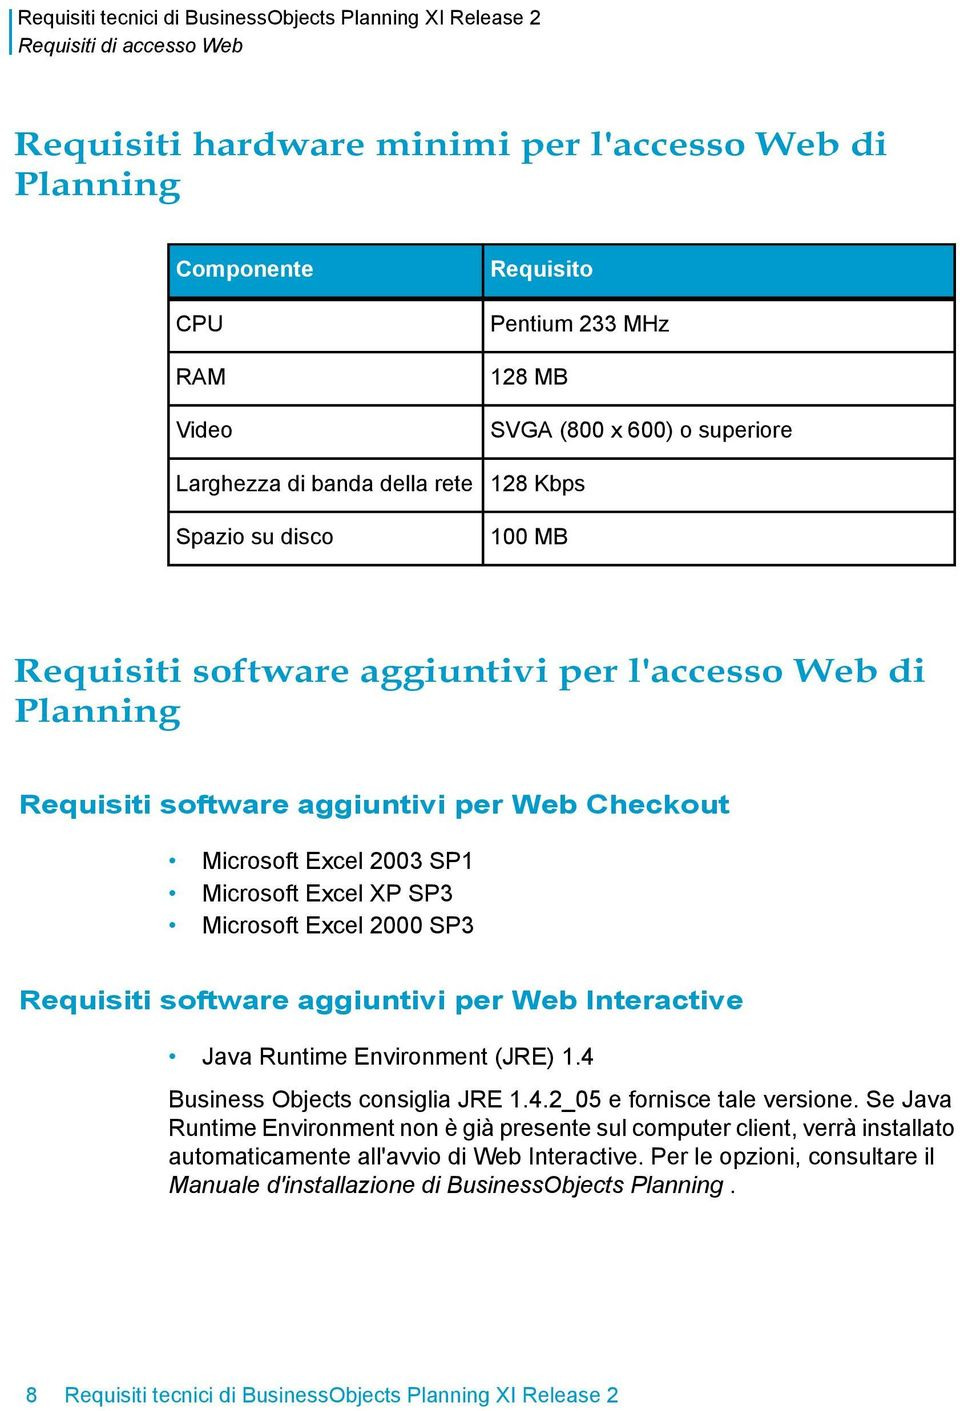 Excel 2000 SP3 Requisiti software aggiuntivi per Web Interactive Java Runtime Environment (JRE) 1.4 Business Objects consiglia JRE 1.4.2_05 e fornisce tale versione.